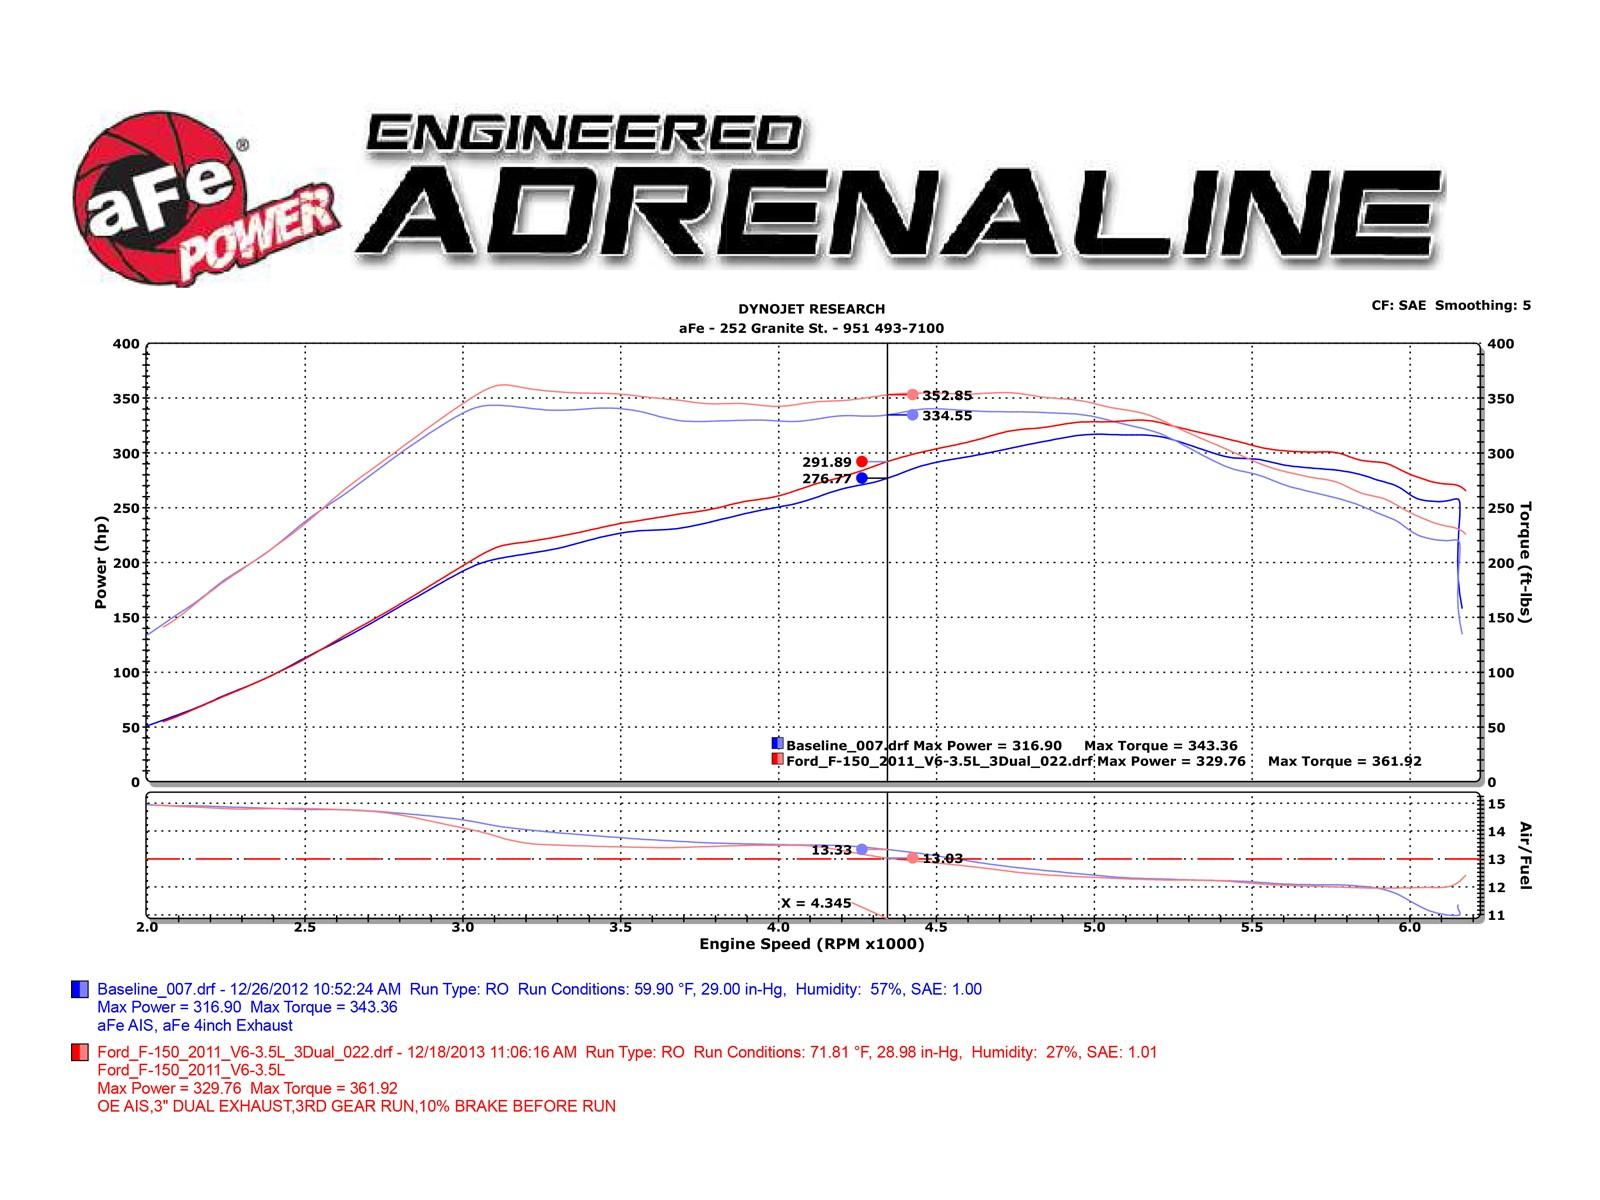 Mach Force Xp 3 409 Stainless Steel Cat Back Exhaust System Afe Power Ford F150 4 9l Engine Diagram Adds Up To 15 Hp Horsepower 18 Lbs X Ft Torque Max Gains F 150